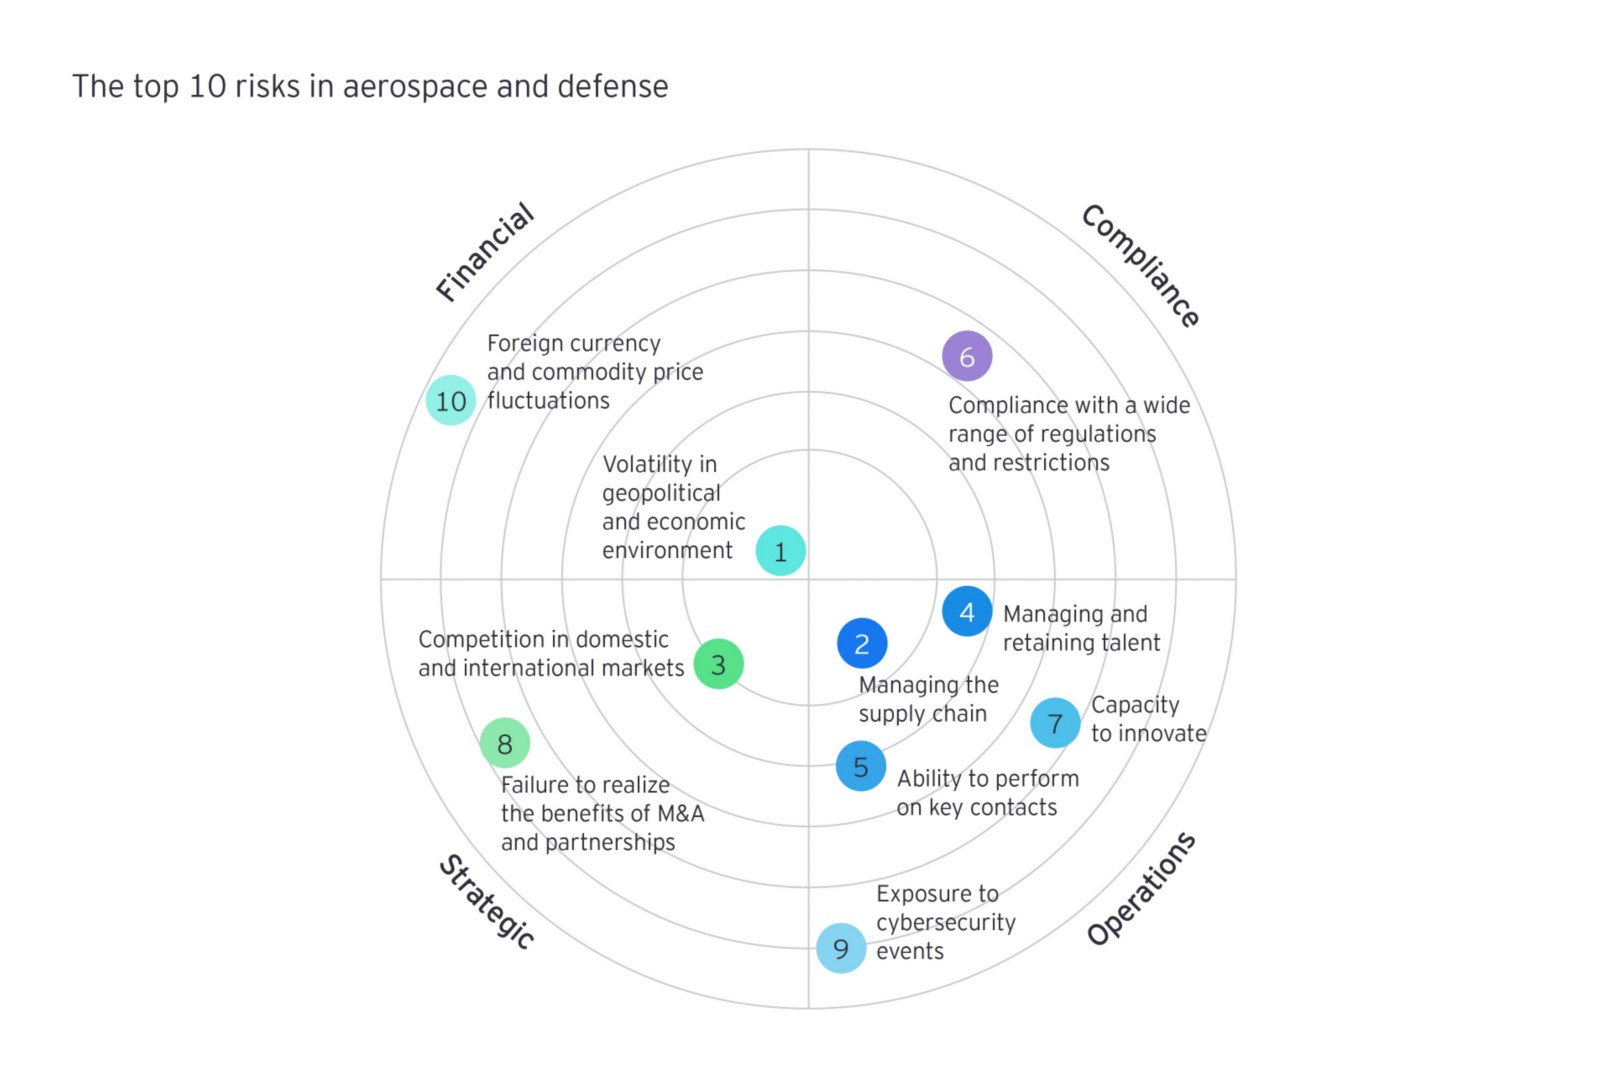 The top 10 risks in aerospace and defense info graph